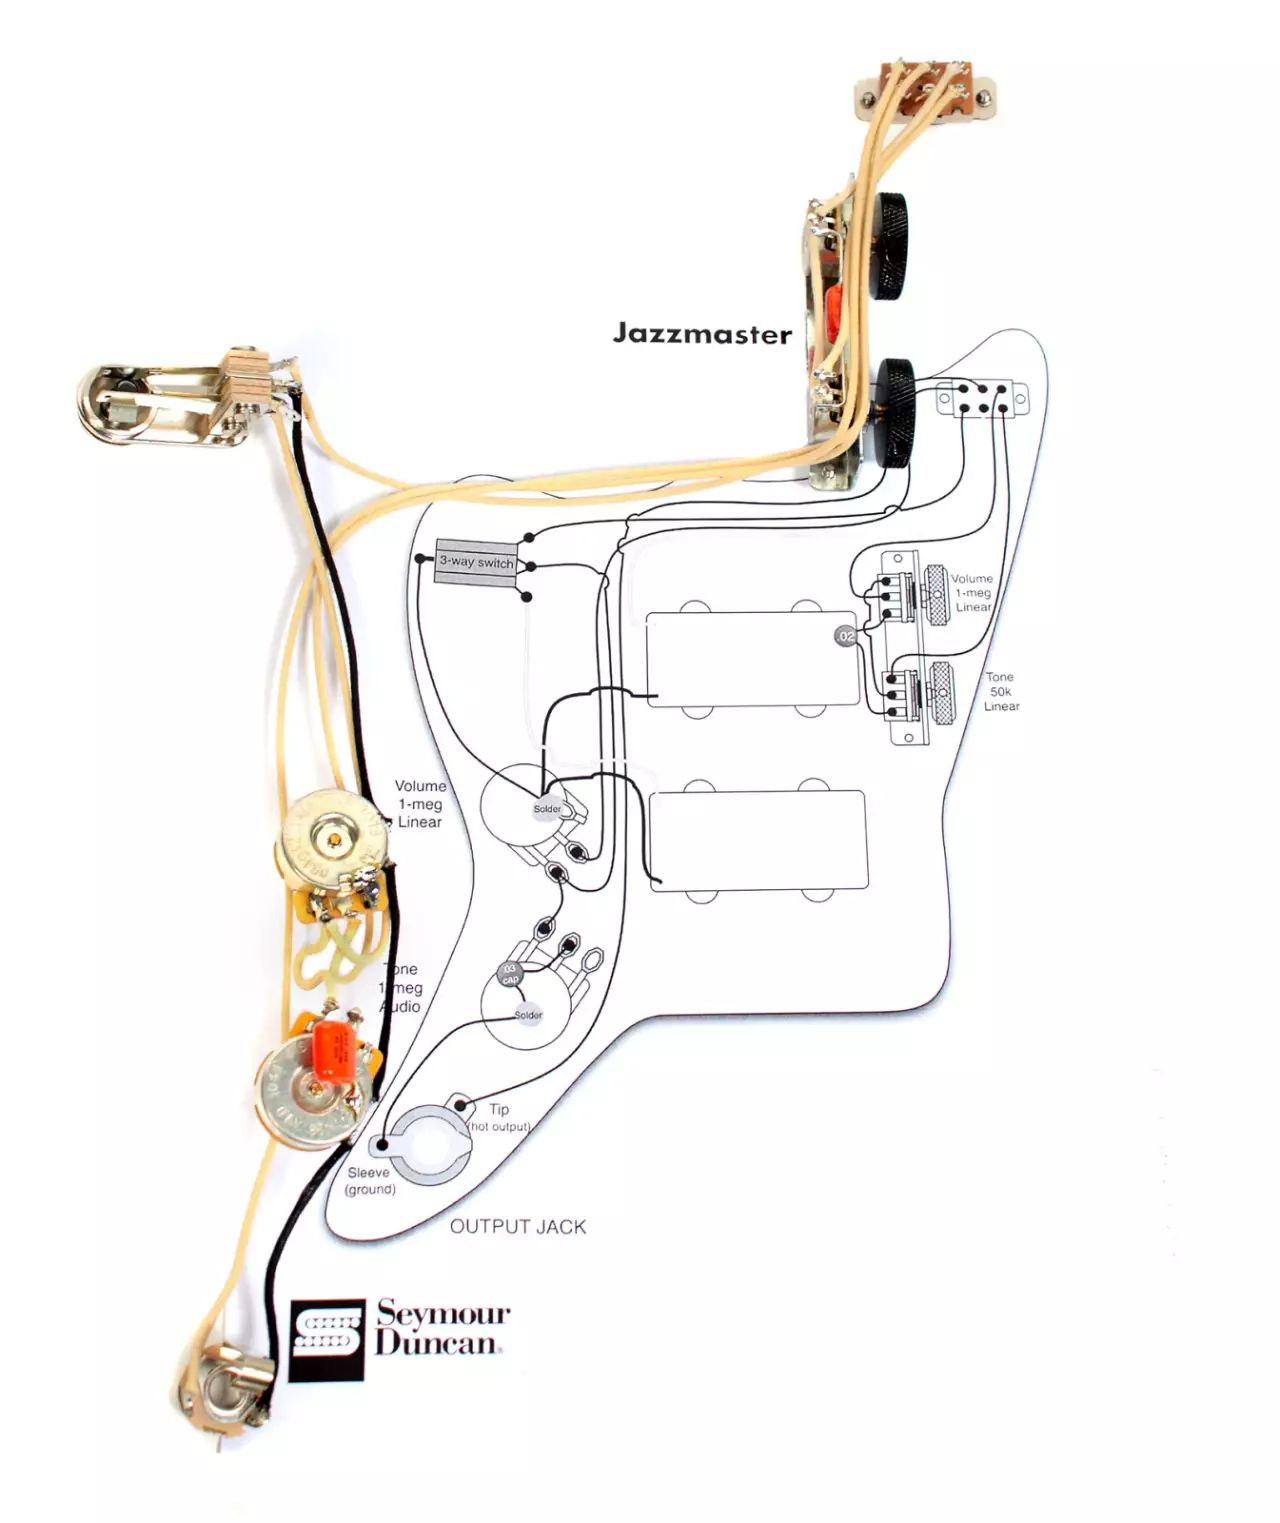 Wiring Diagram For Fender Jazzmaster Auto Electrical Strat Diagrams